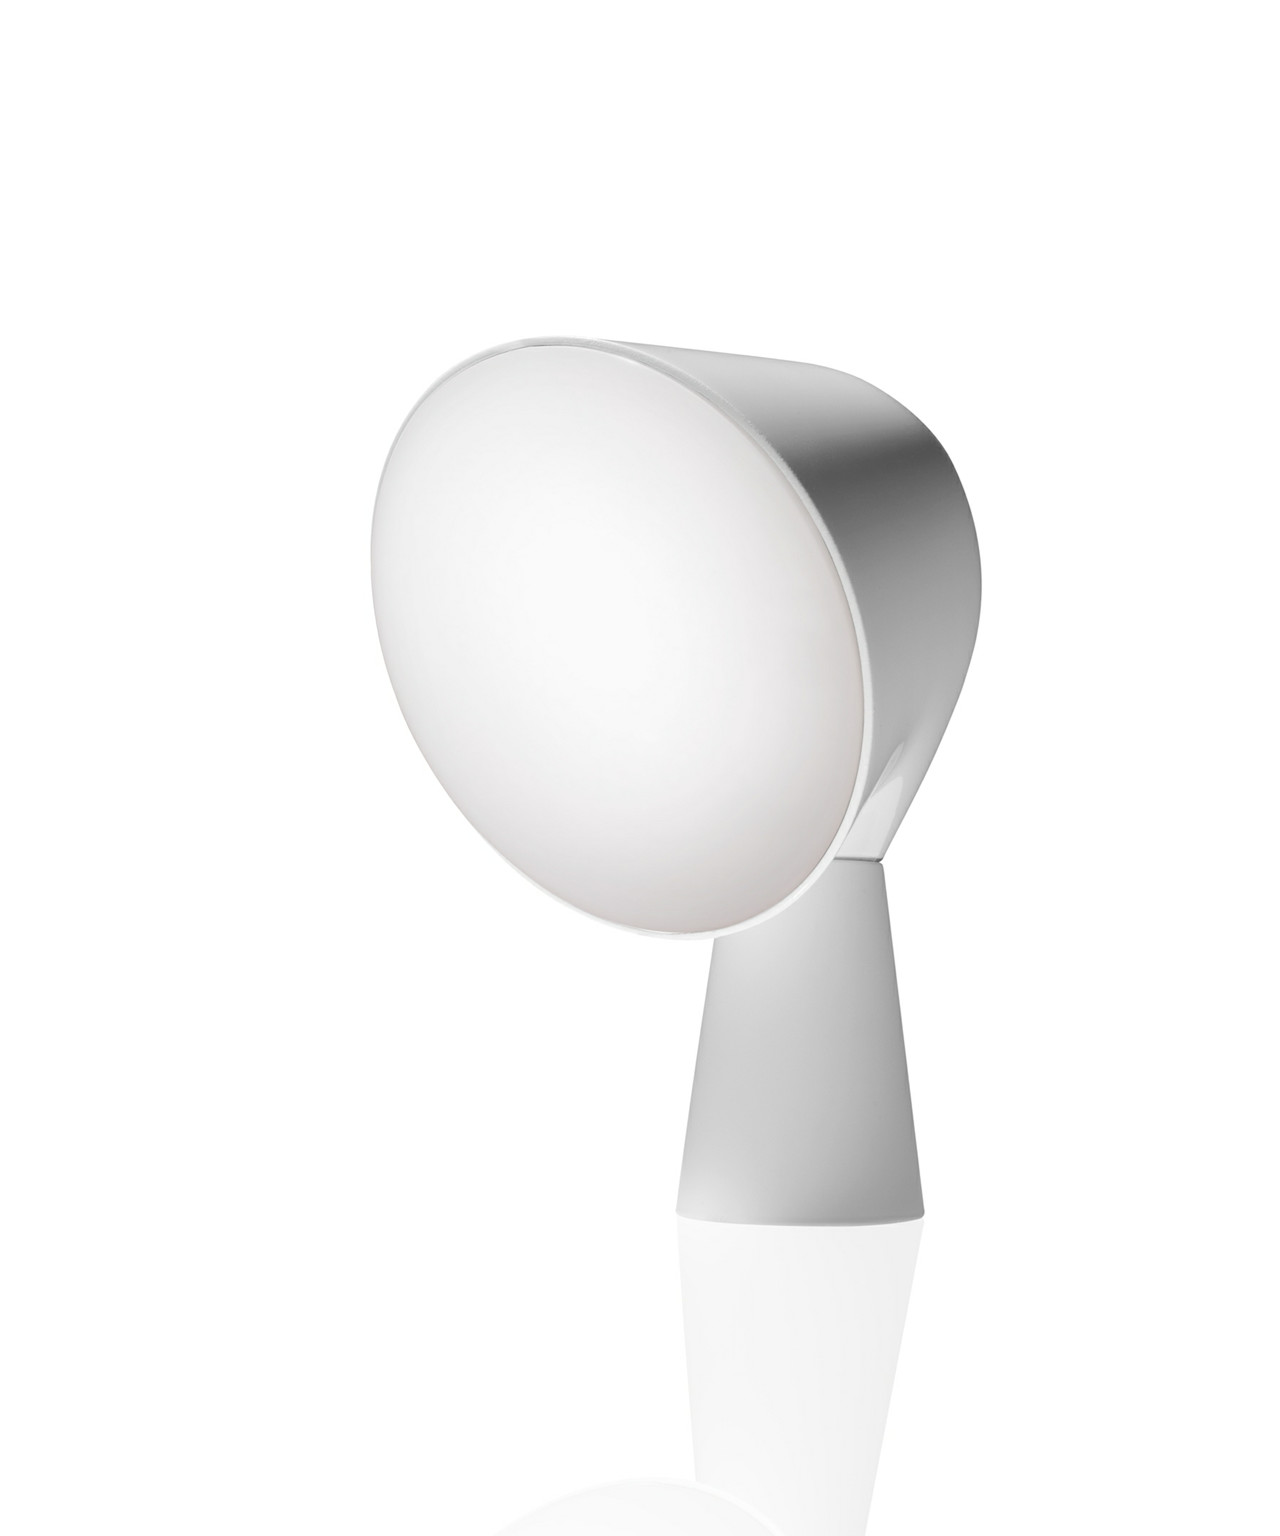 Image of   Binic Bordlampe Hvid - Foscarini